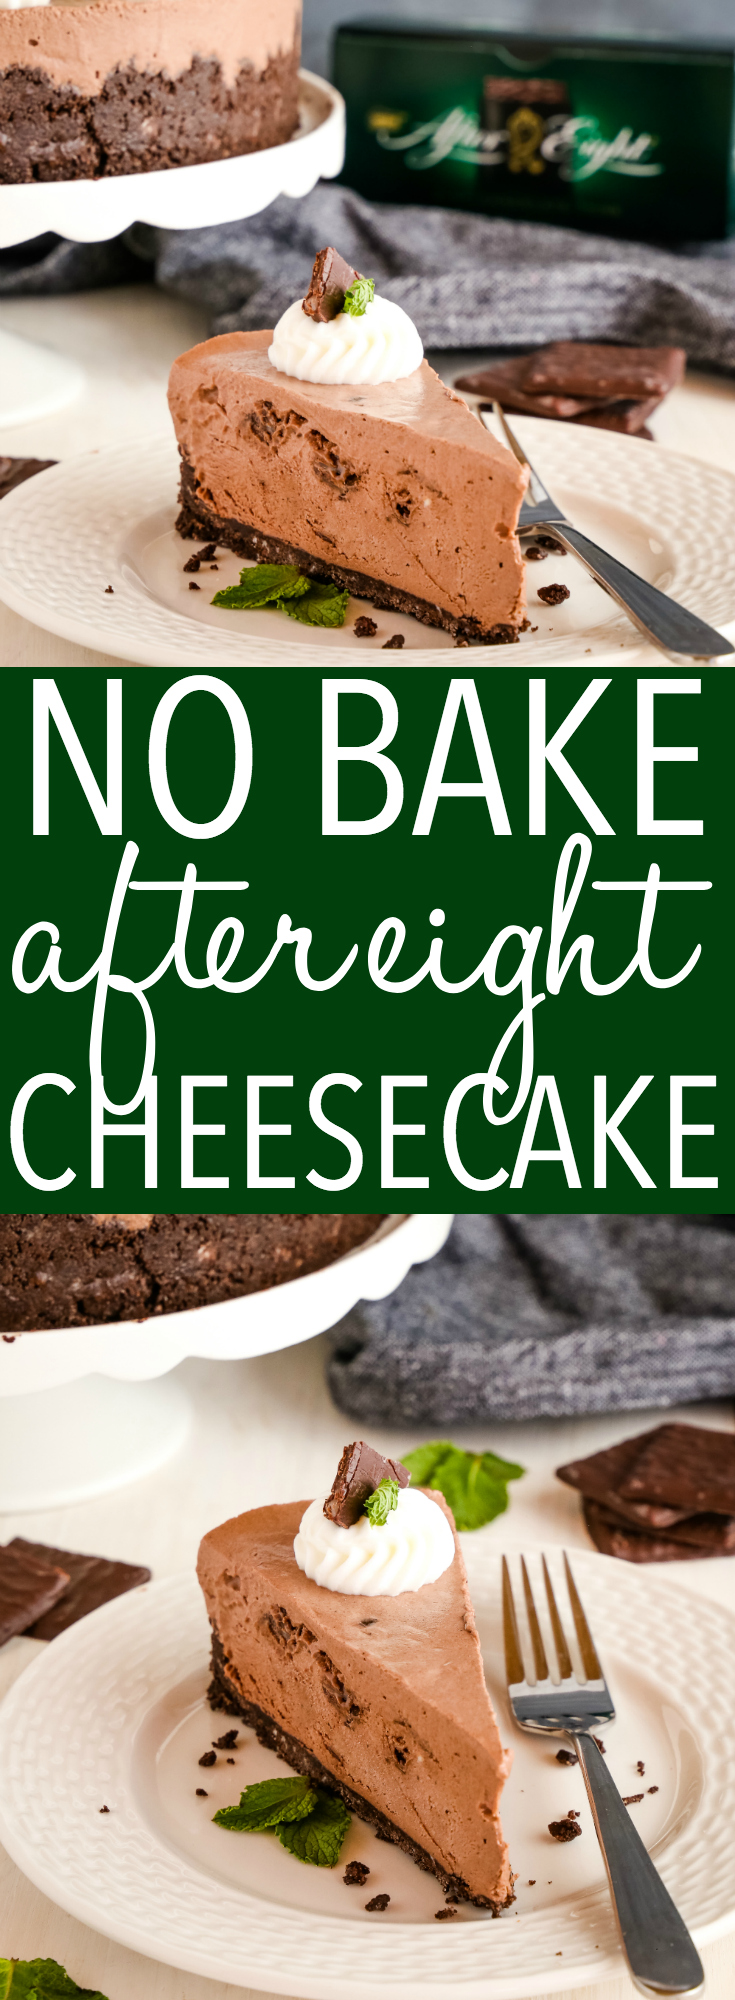 This Easy No Bake After Eight Cheesecake is the perfect decadent dessert for the holidays that's creamy, chocolatey, and packed with chocolate mint candies! Recipe from thebusybaker.ca! #cheesecake #Mint #chocolate #aftereight #peppermintpatty #juniormints #peppermint #nobake #nobakecheesecake #creamy #easyrecipe #christmas #thanksgiving #holidays #cake via @busybakerblog